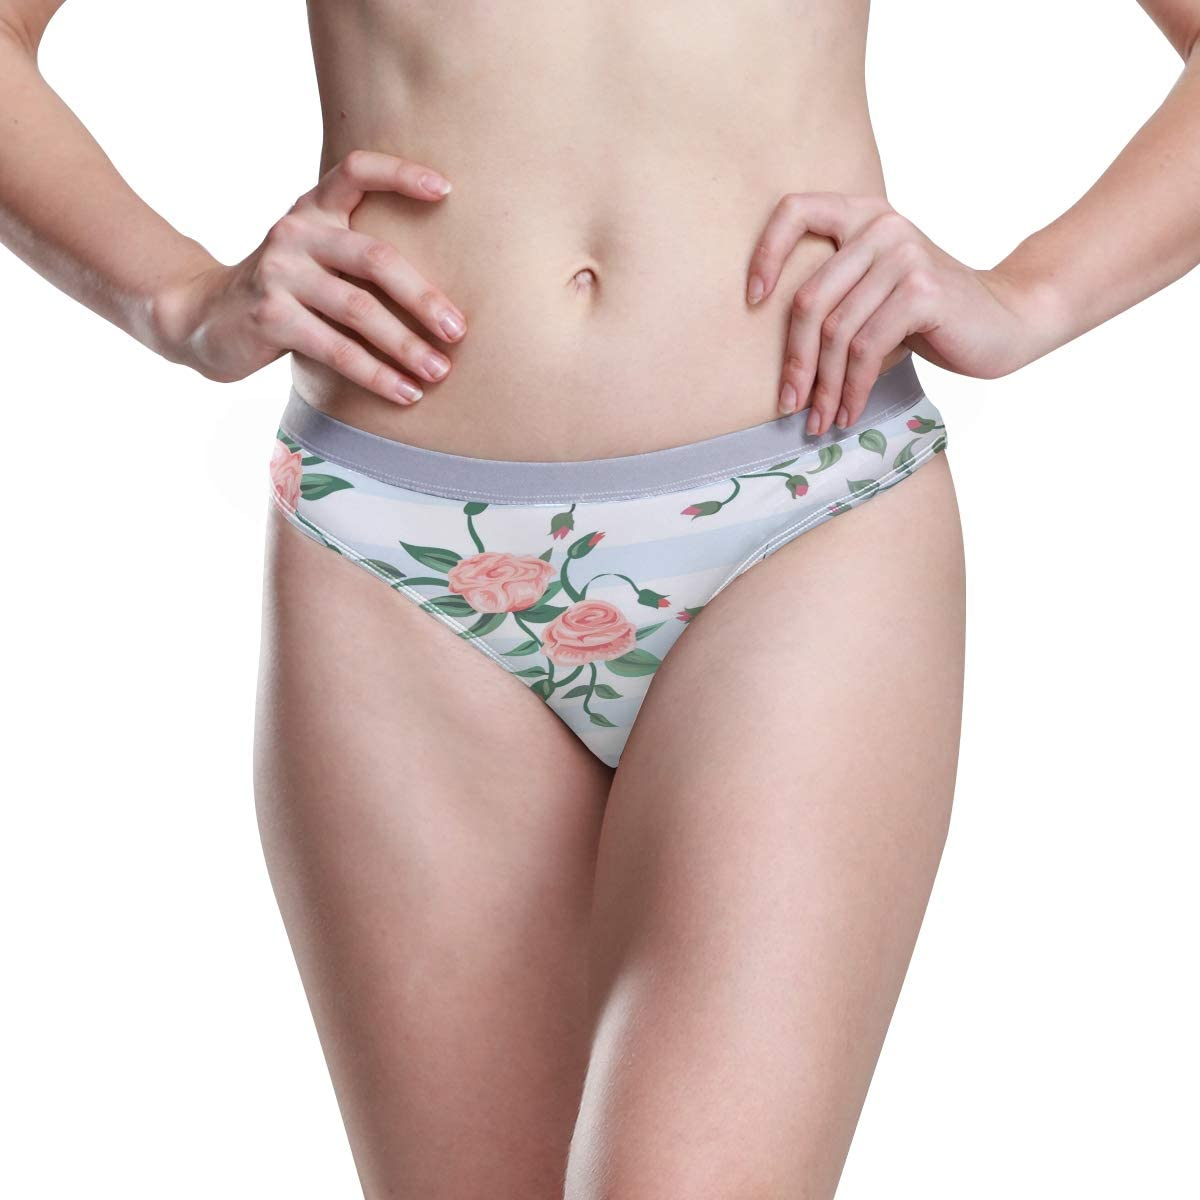 Womens Underwear Hipster Panties Pink Rose Floral Flowers Stripes Fantastic Ladies Hi Cut Bikini Hipster Panty